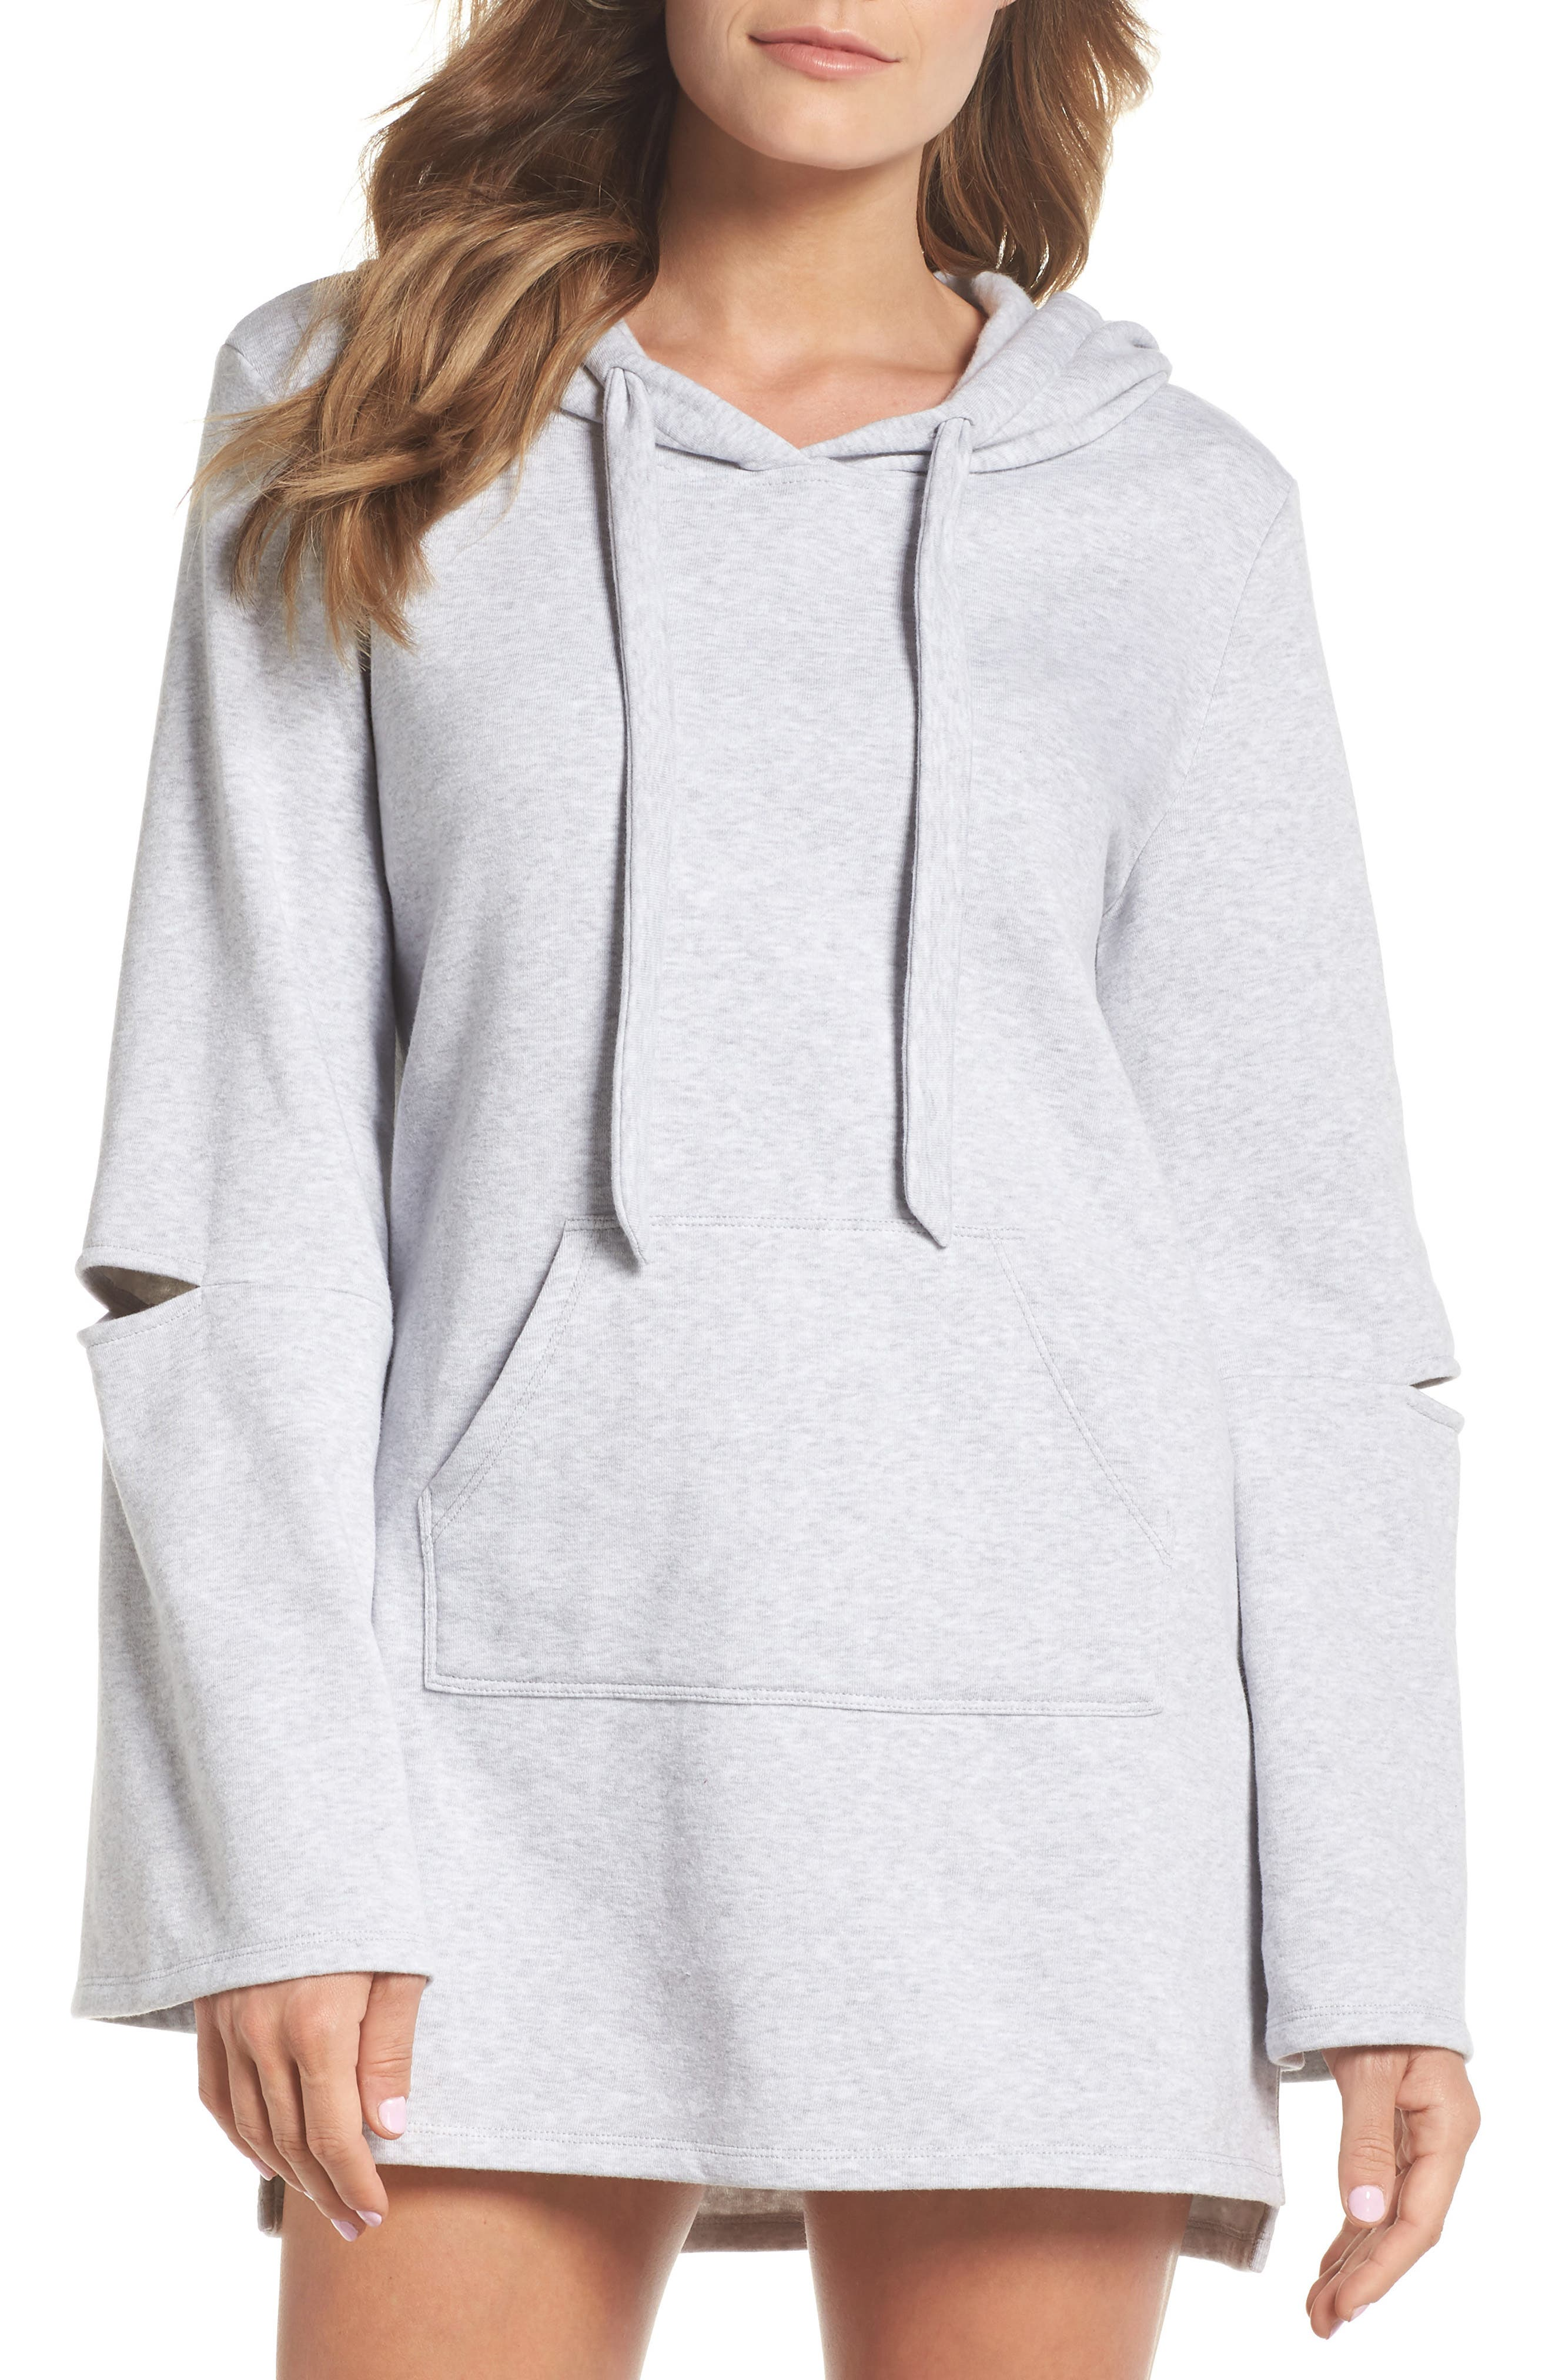 All The Stops Hoodie,                         Main,                         color, 030